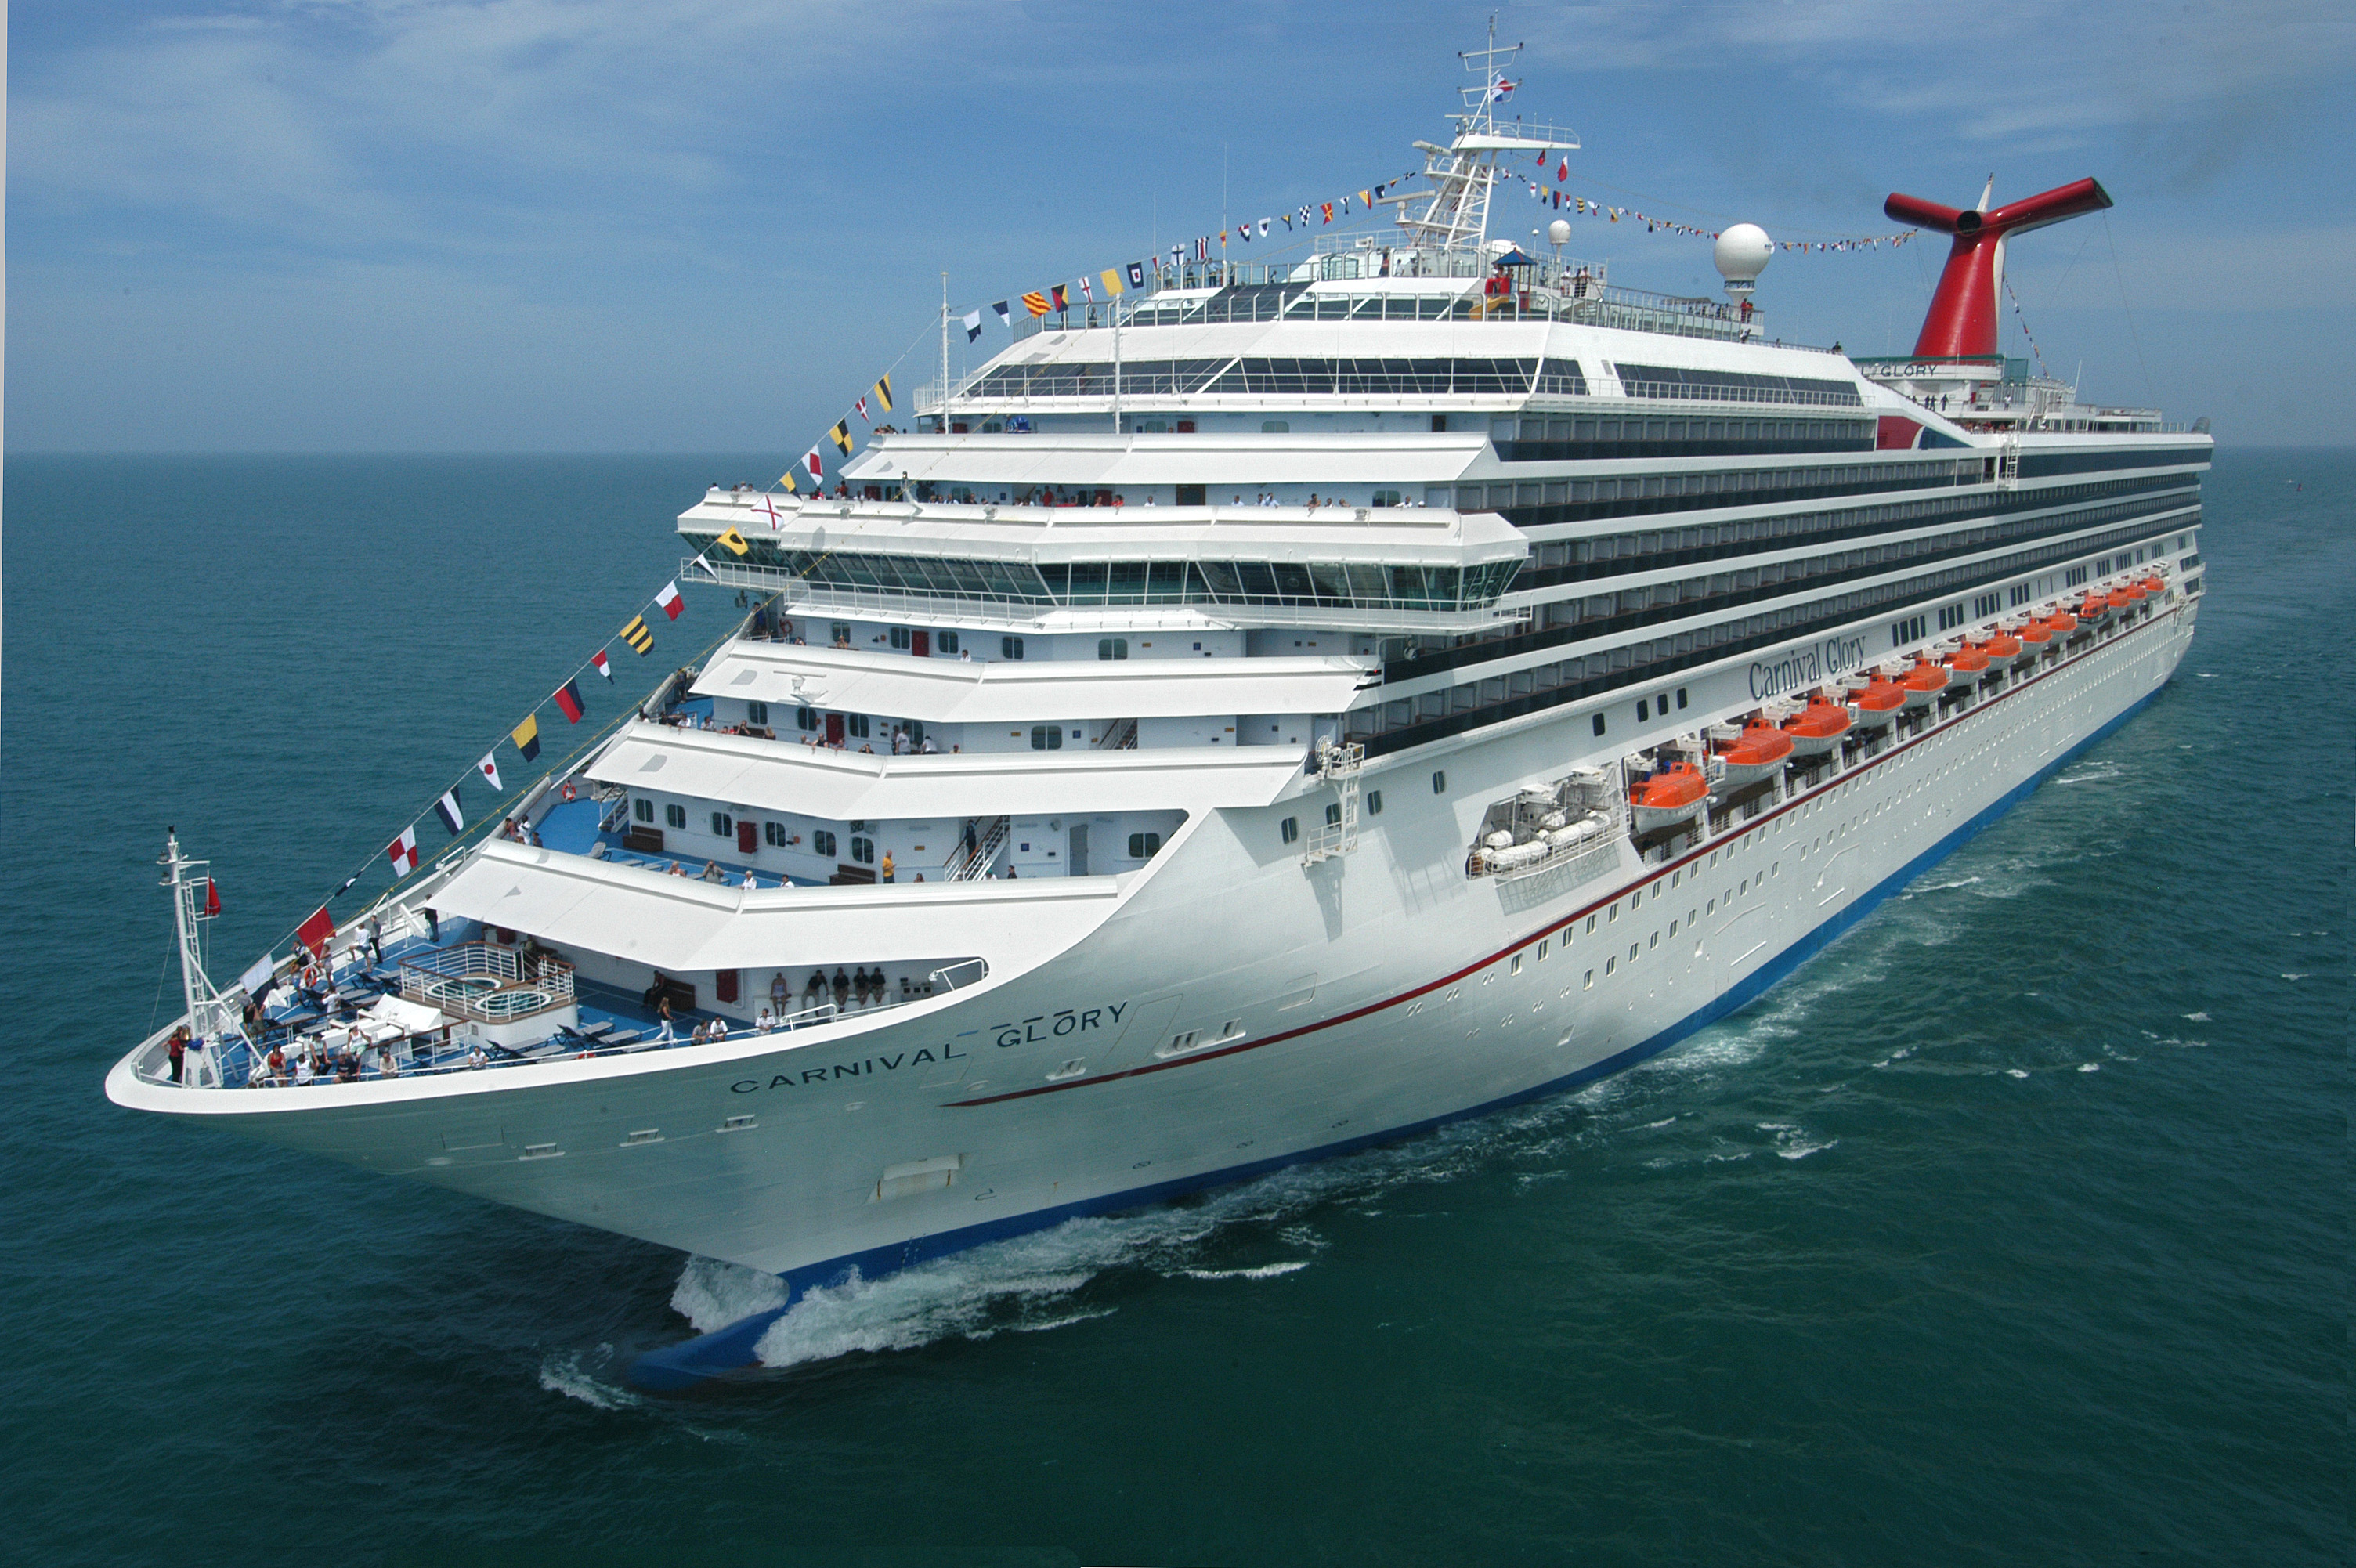 Carnival Cruise Line News - Cruises departing from ny